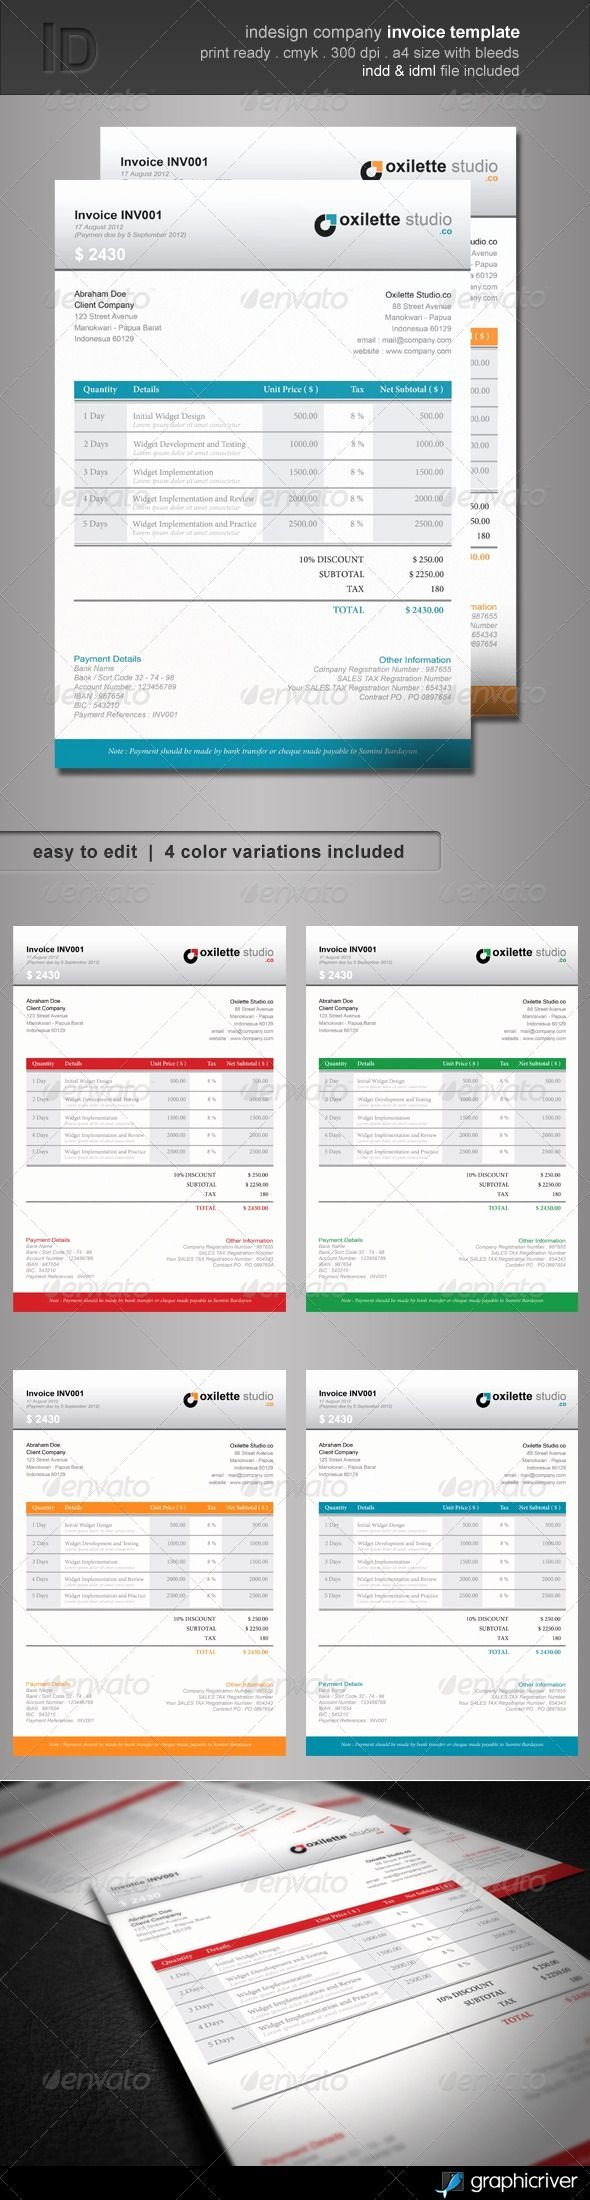 Free Indesign Invoice Template Fresh Indesign Invoice Template Free Invoice Template Ideas